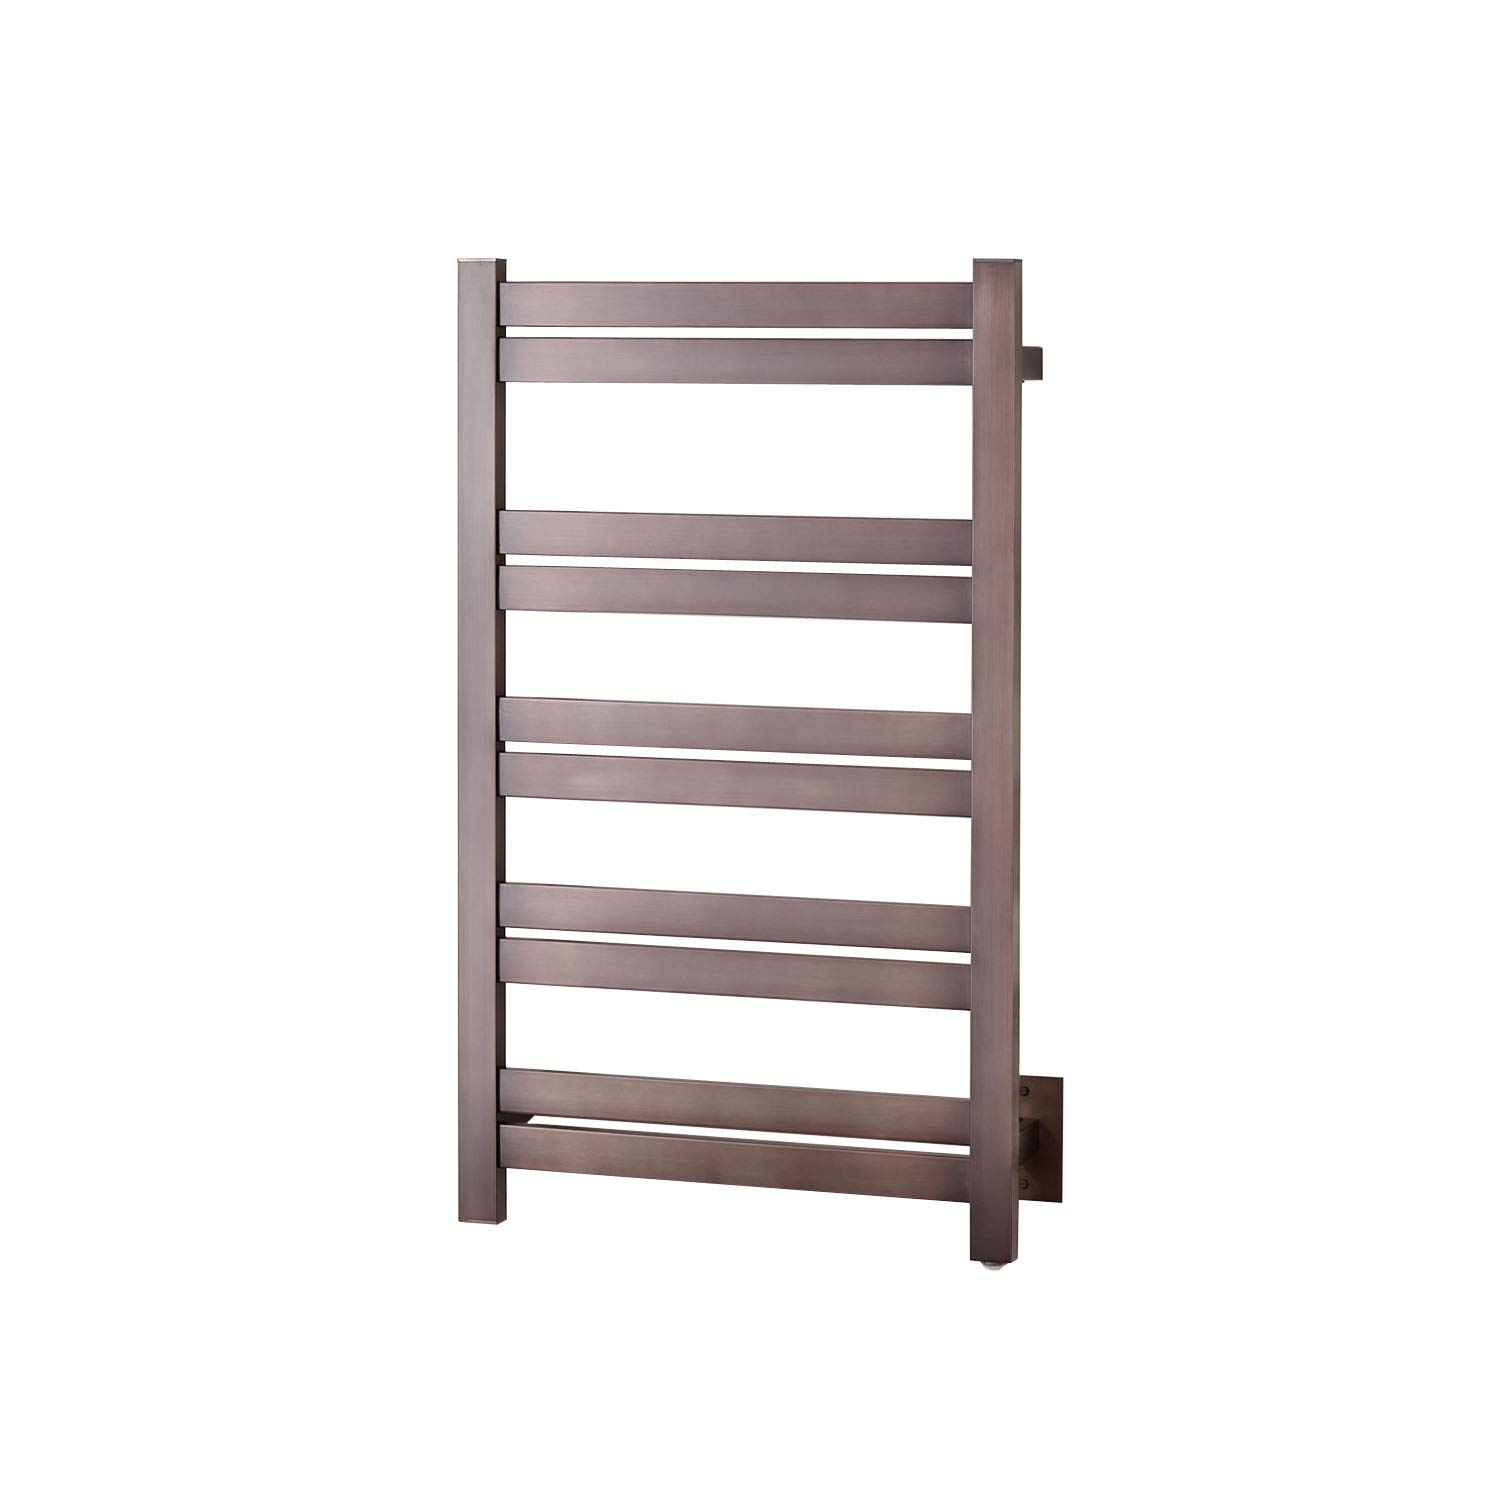 Naiture 20 Extra Tall Hardwired Towel Warmer In Oil Rubbed Bronze Finish Naiture Home Store